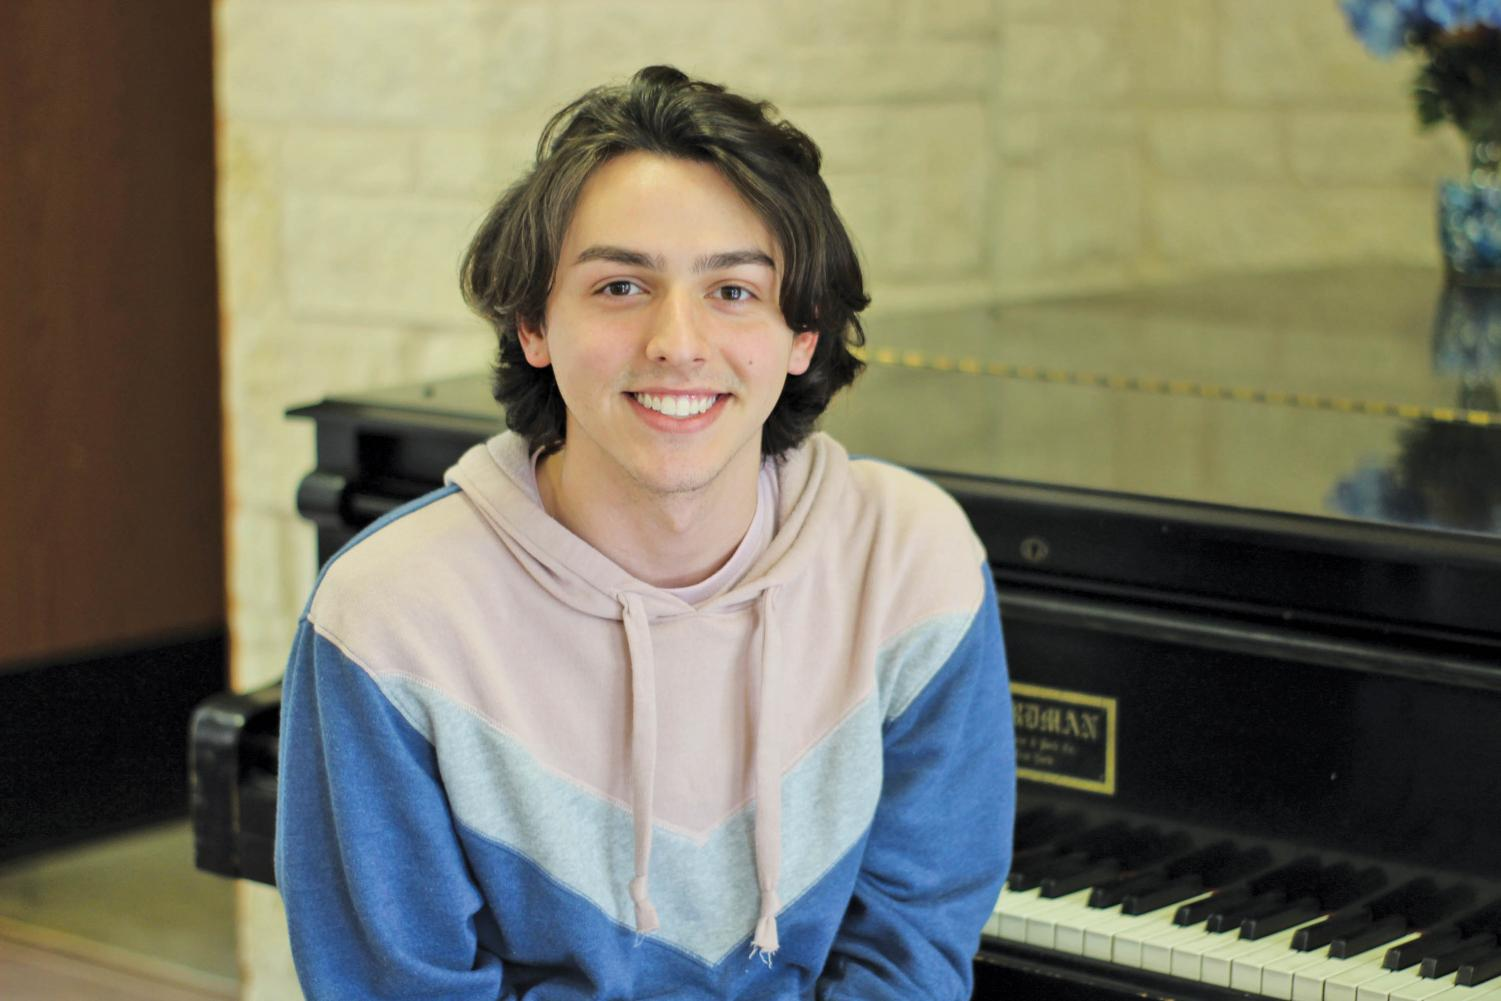 Basil Moreau Hall residents may recognize Fuentes for his piano playing and singing voice. He enjoys playing during afternoons in the BMH lobby to other residents.